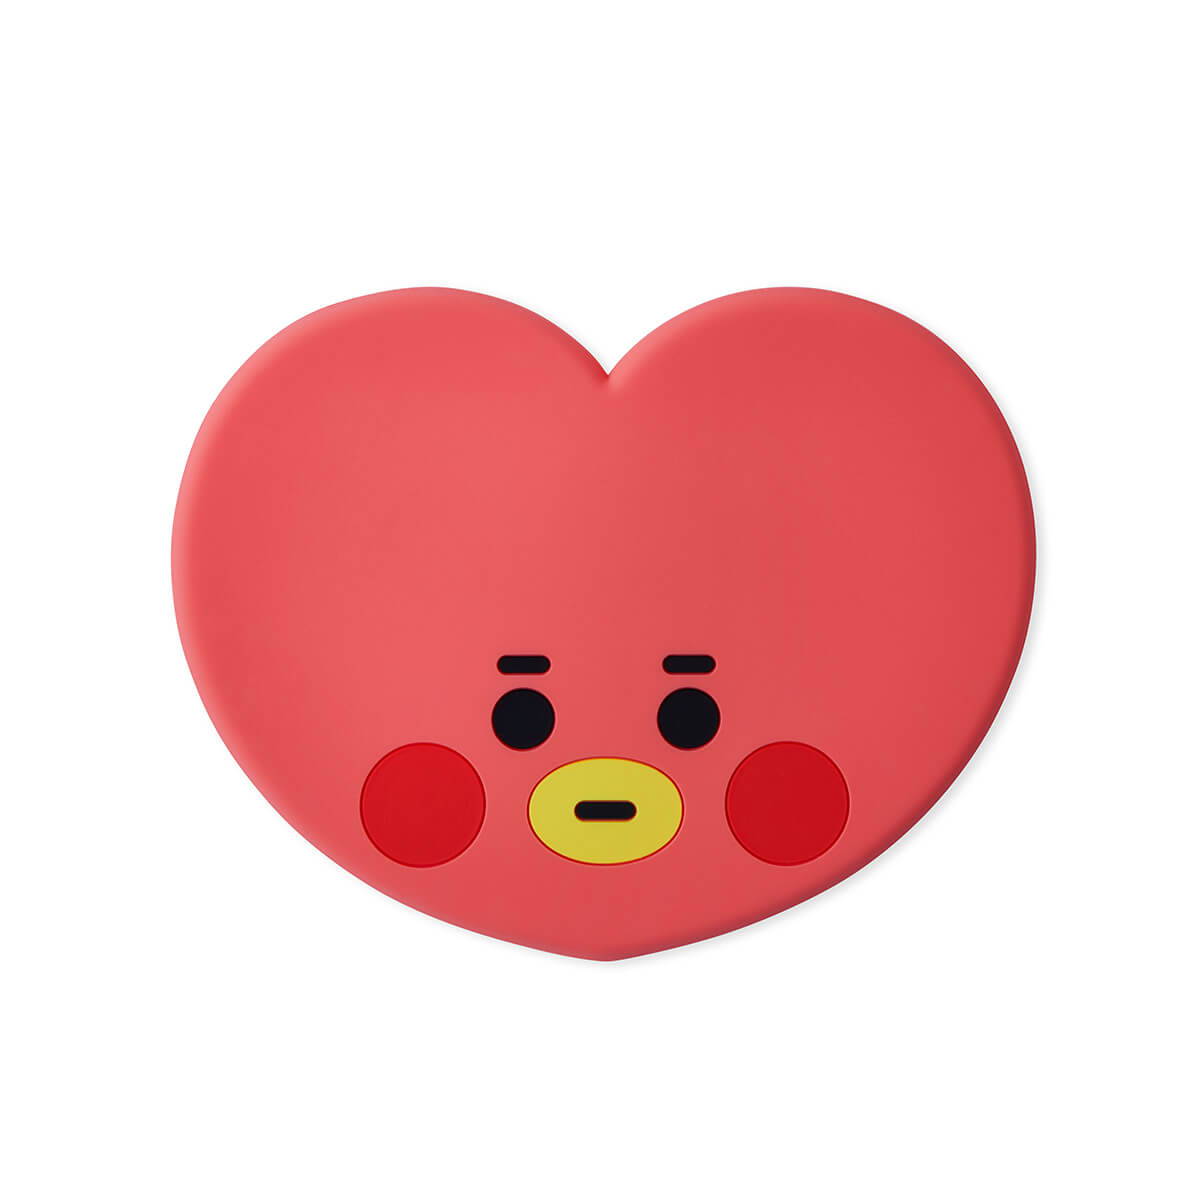 BT21 TATA BABY Silicone Cup Coaster